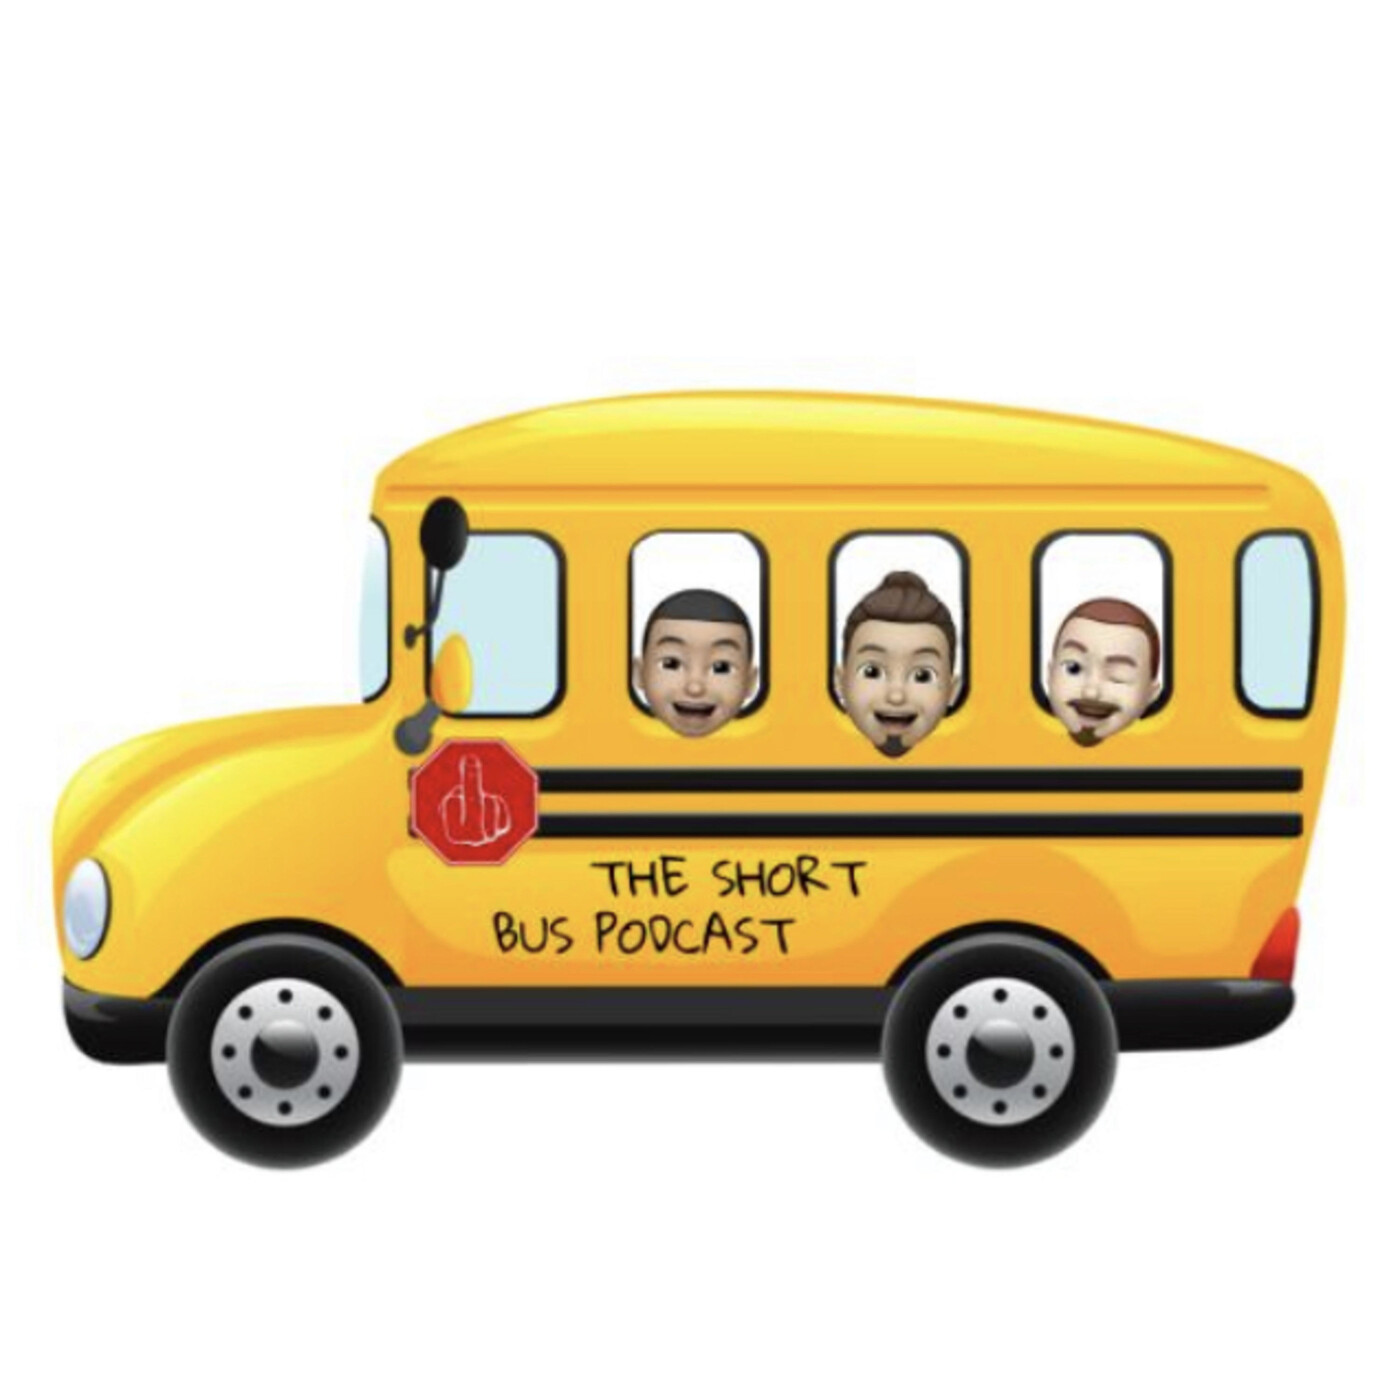 The Short Bus Podcast